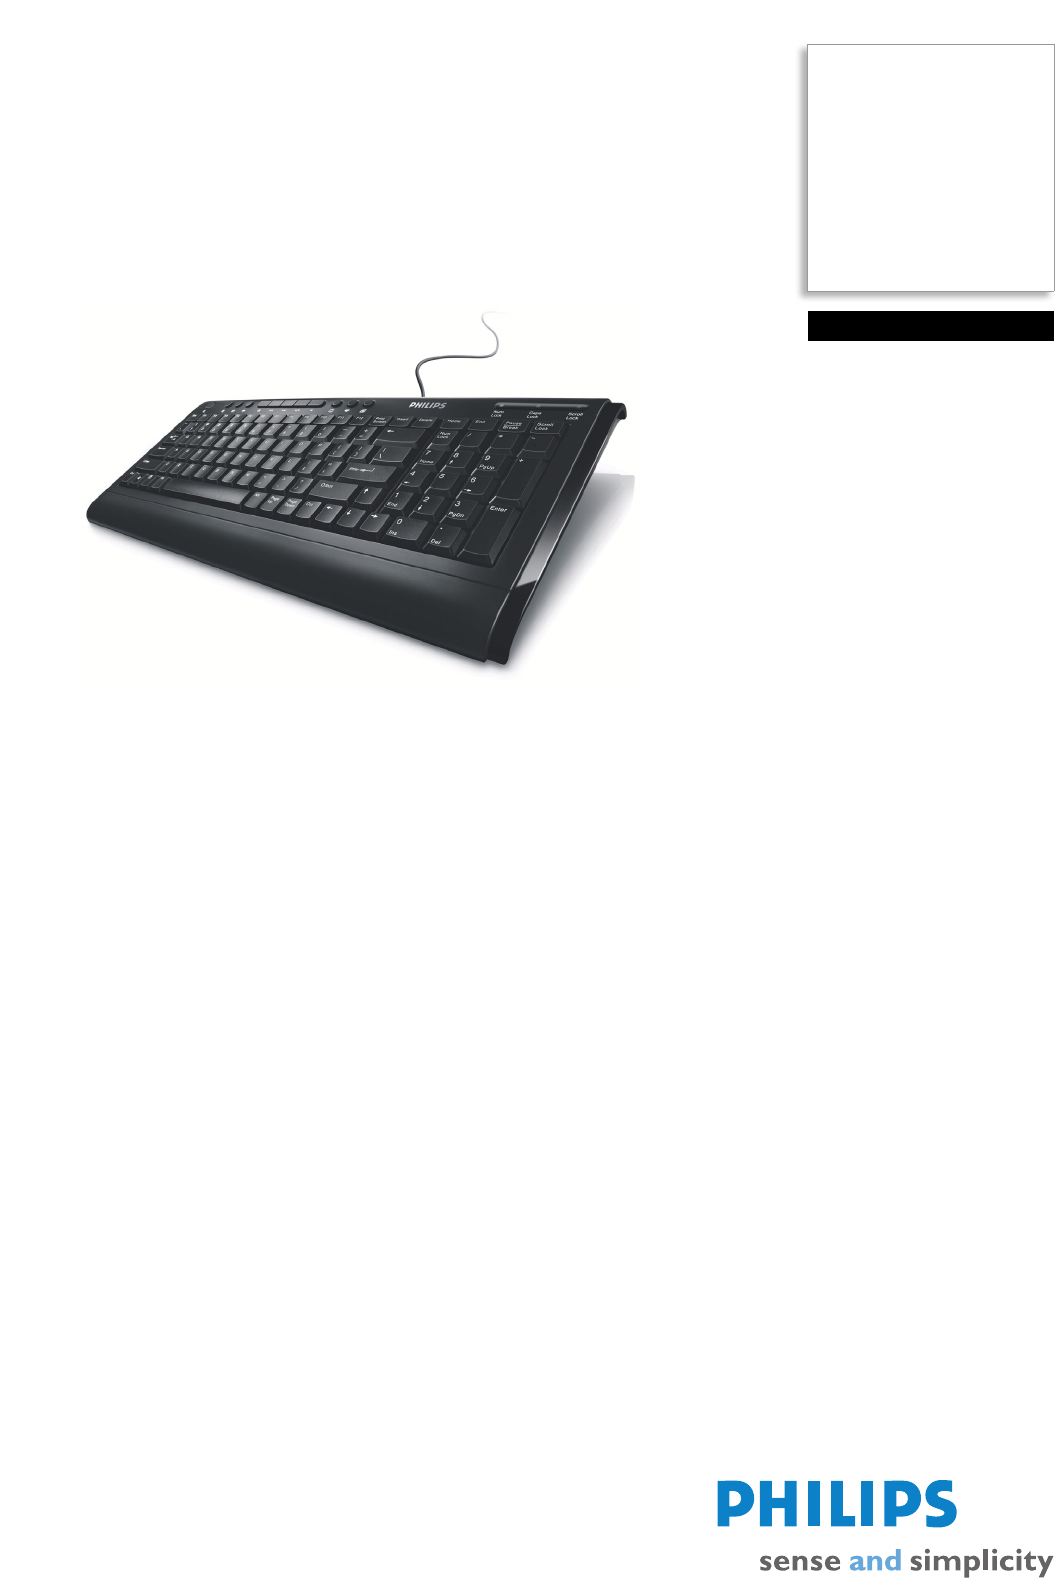 philips computer keyboard fcv 552 user guide manualsonline com rh office manualsonline com Philips 22PFL3504D F7 Manual Philips Television Troubleshooting